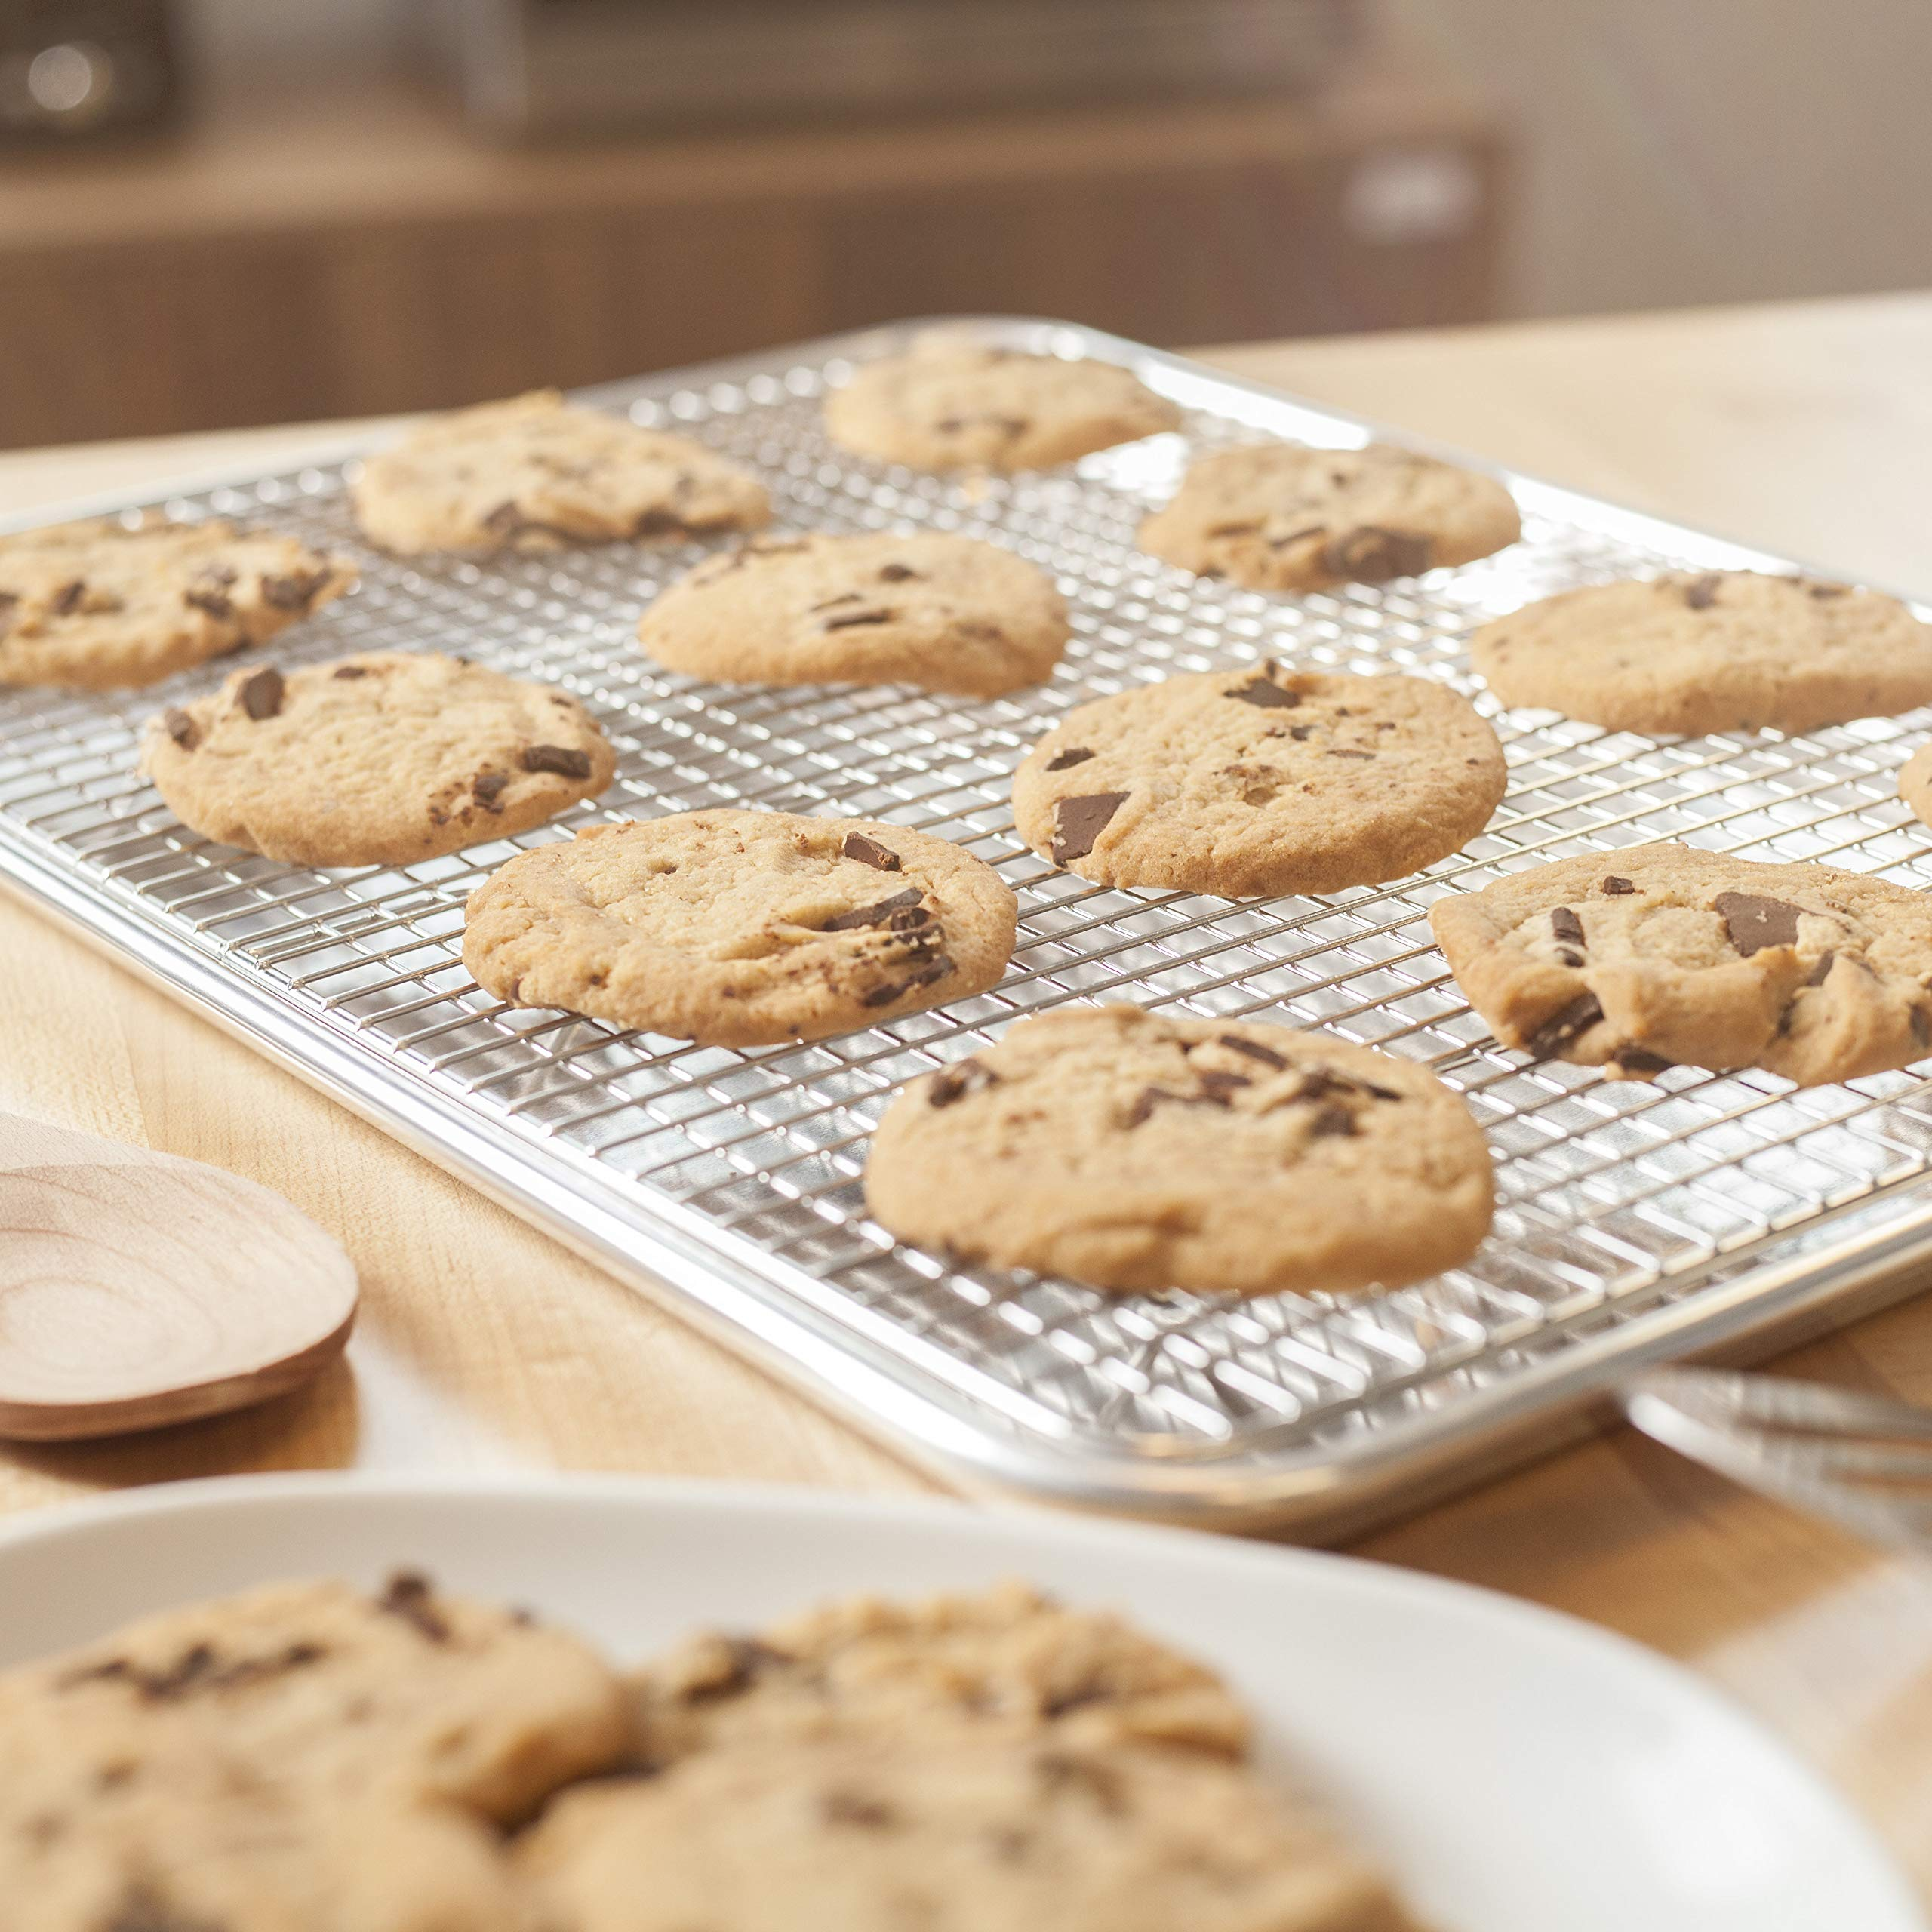 KITCHENATICS Baking Sheet with Cooling Rack: Half Aluminum Cookie Pan Tray with Stainless Steel Wire and Roasting Rack - 13.1'' x 17.9'', Heavy Duty Commercial Quality by KITCHENATICS (Image #7)